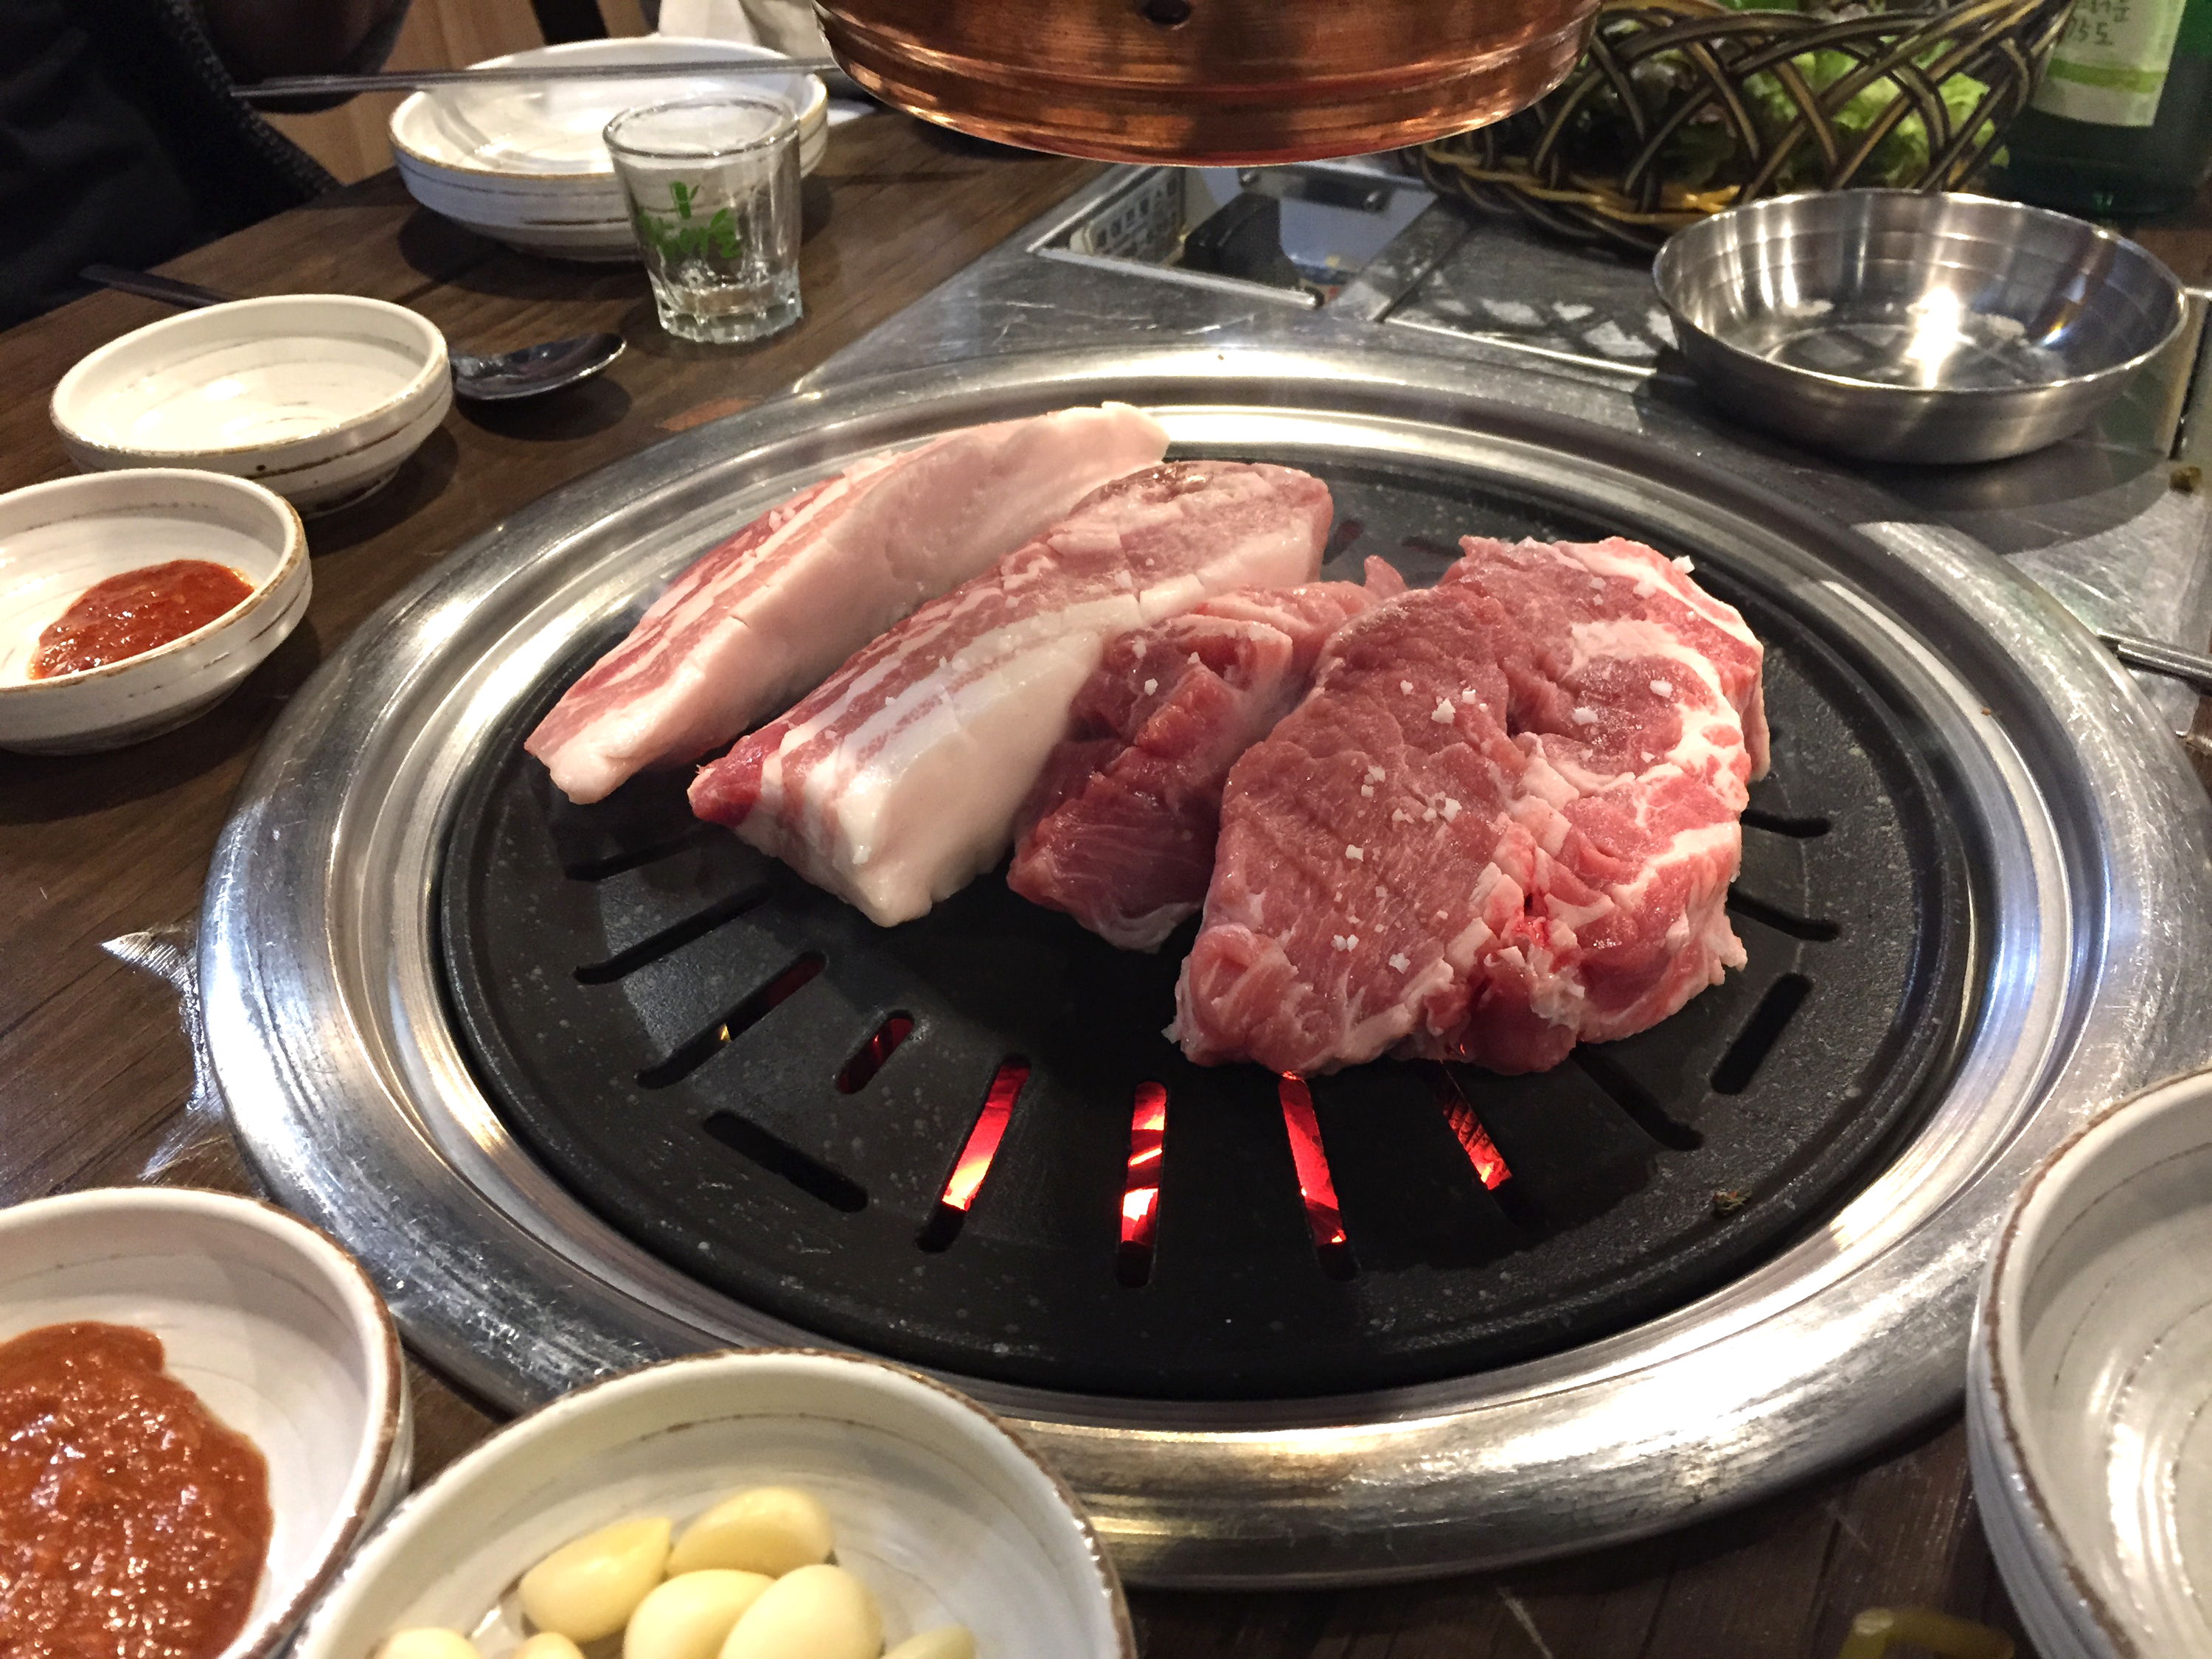 5pm-7pm ▶ Eat and grease up at Yukjeon Sikdang